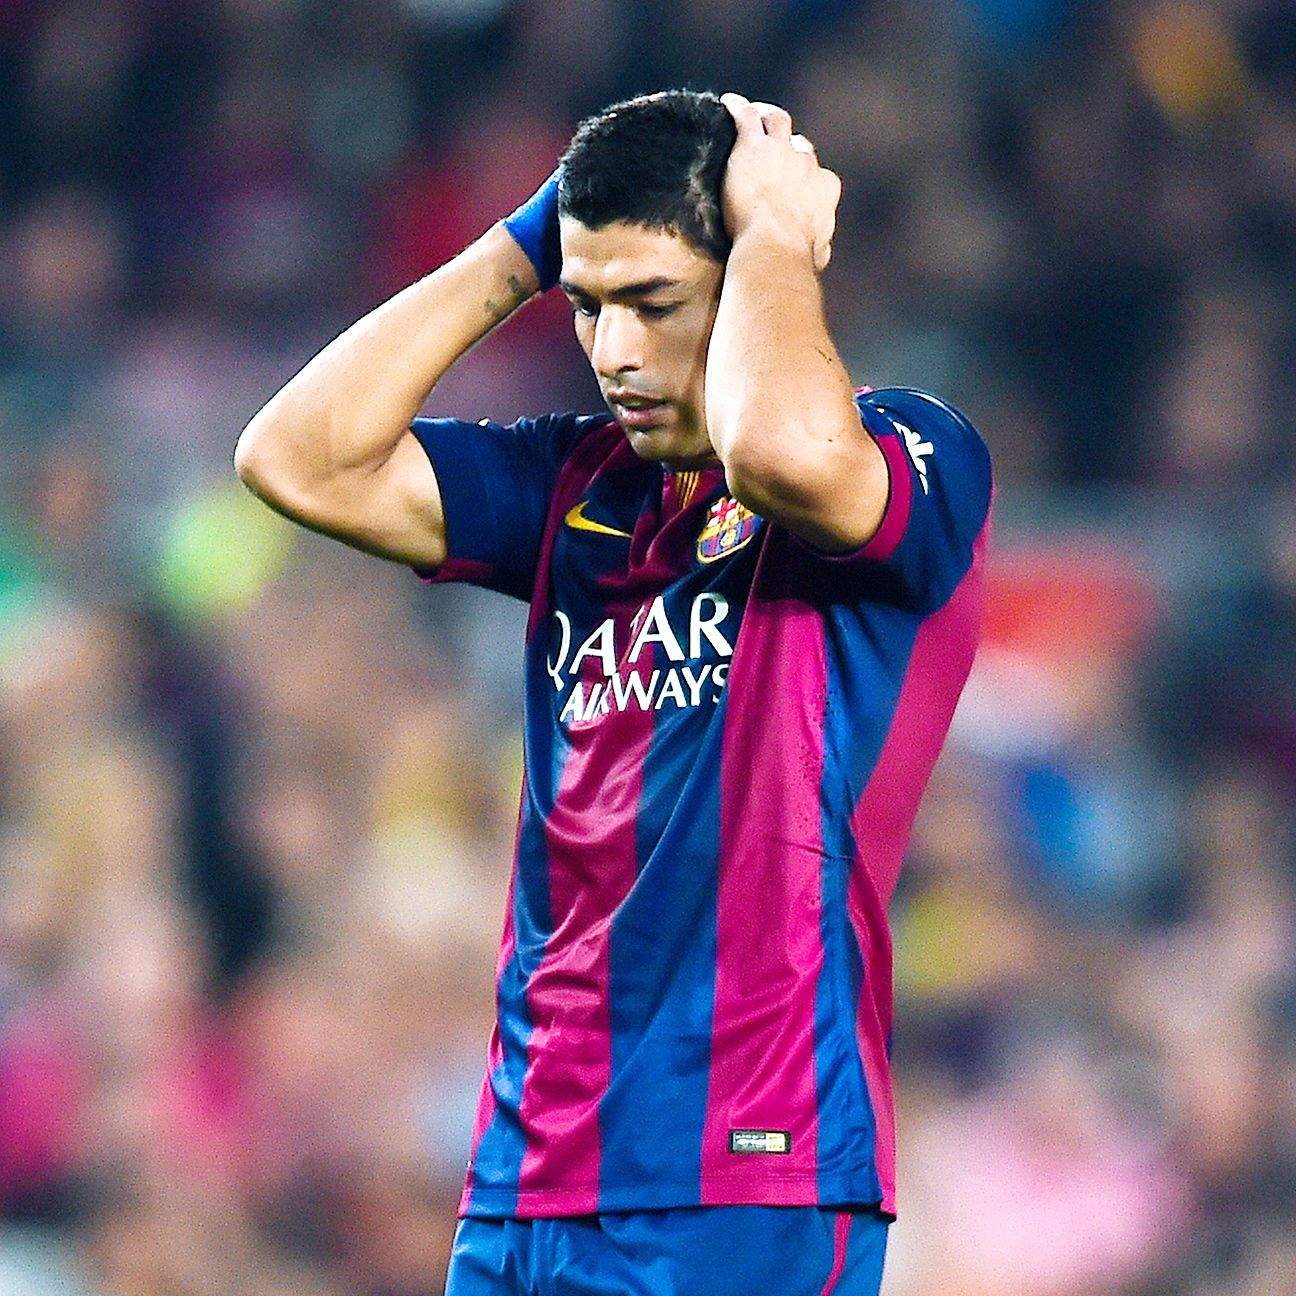 The Barcelona home debut of Luis Suarez did not go as planned.